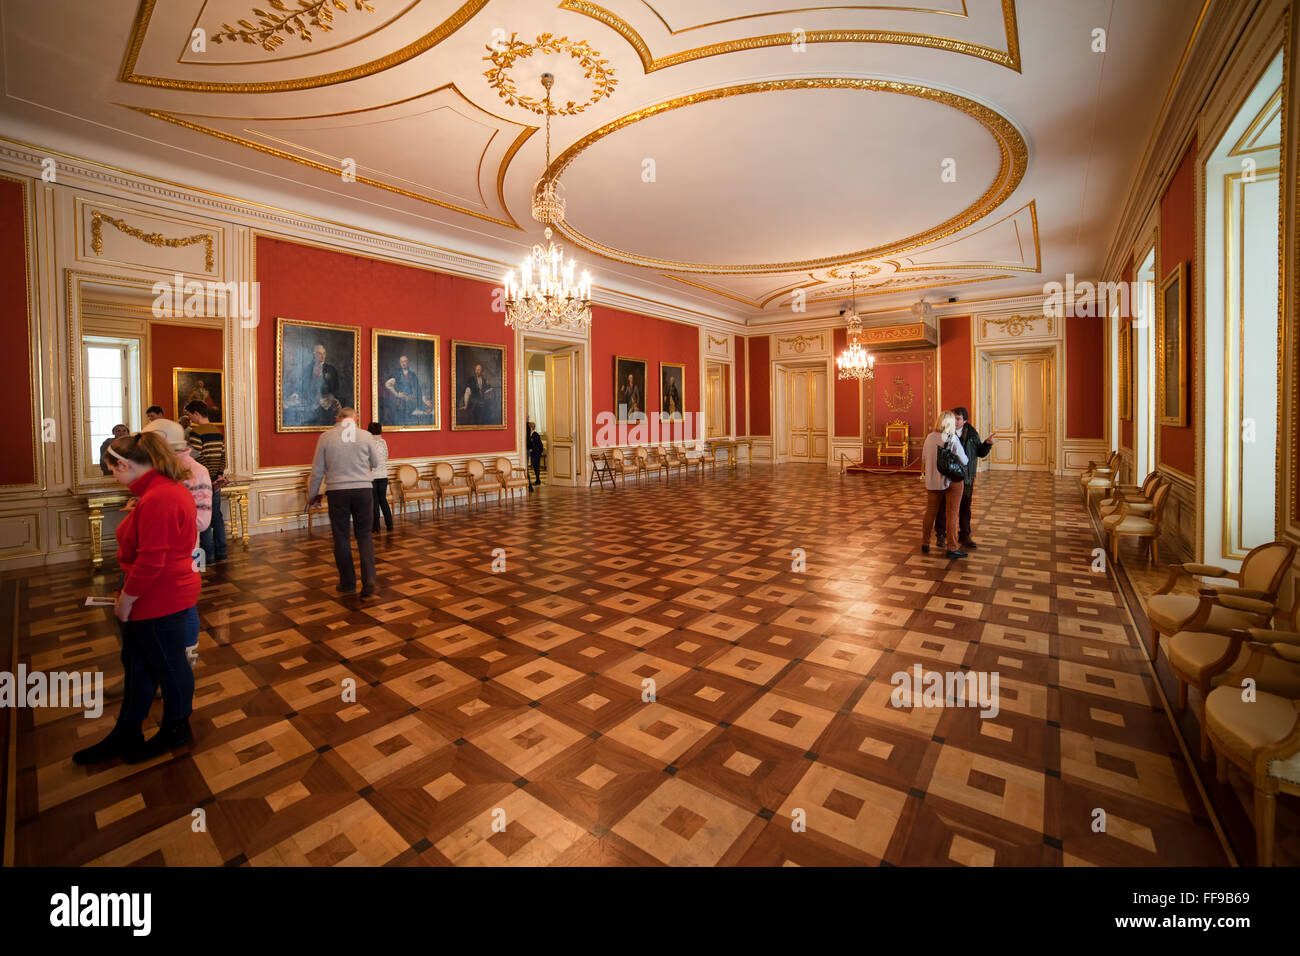 Poland, city of Warsaw, Royal Castle interior, Council Chamber - Stock Image